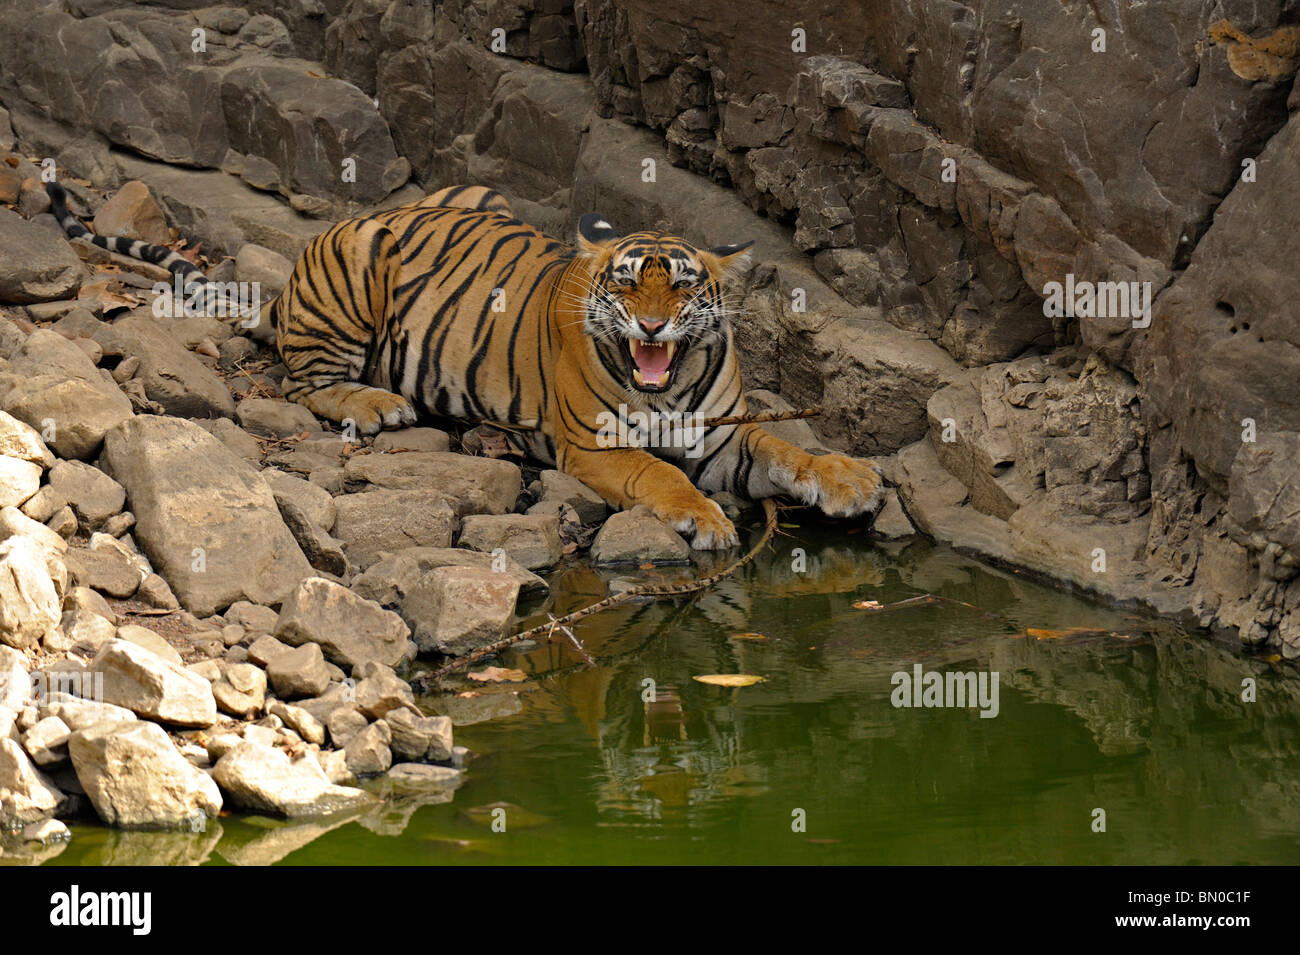 Tiger in a rocky water hole in Ranthambhore national park, India - Stock Image